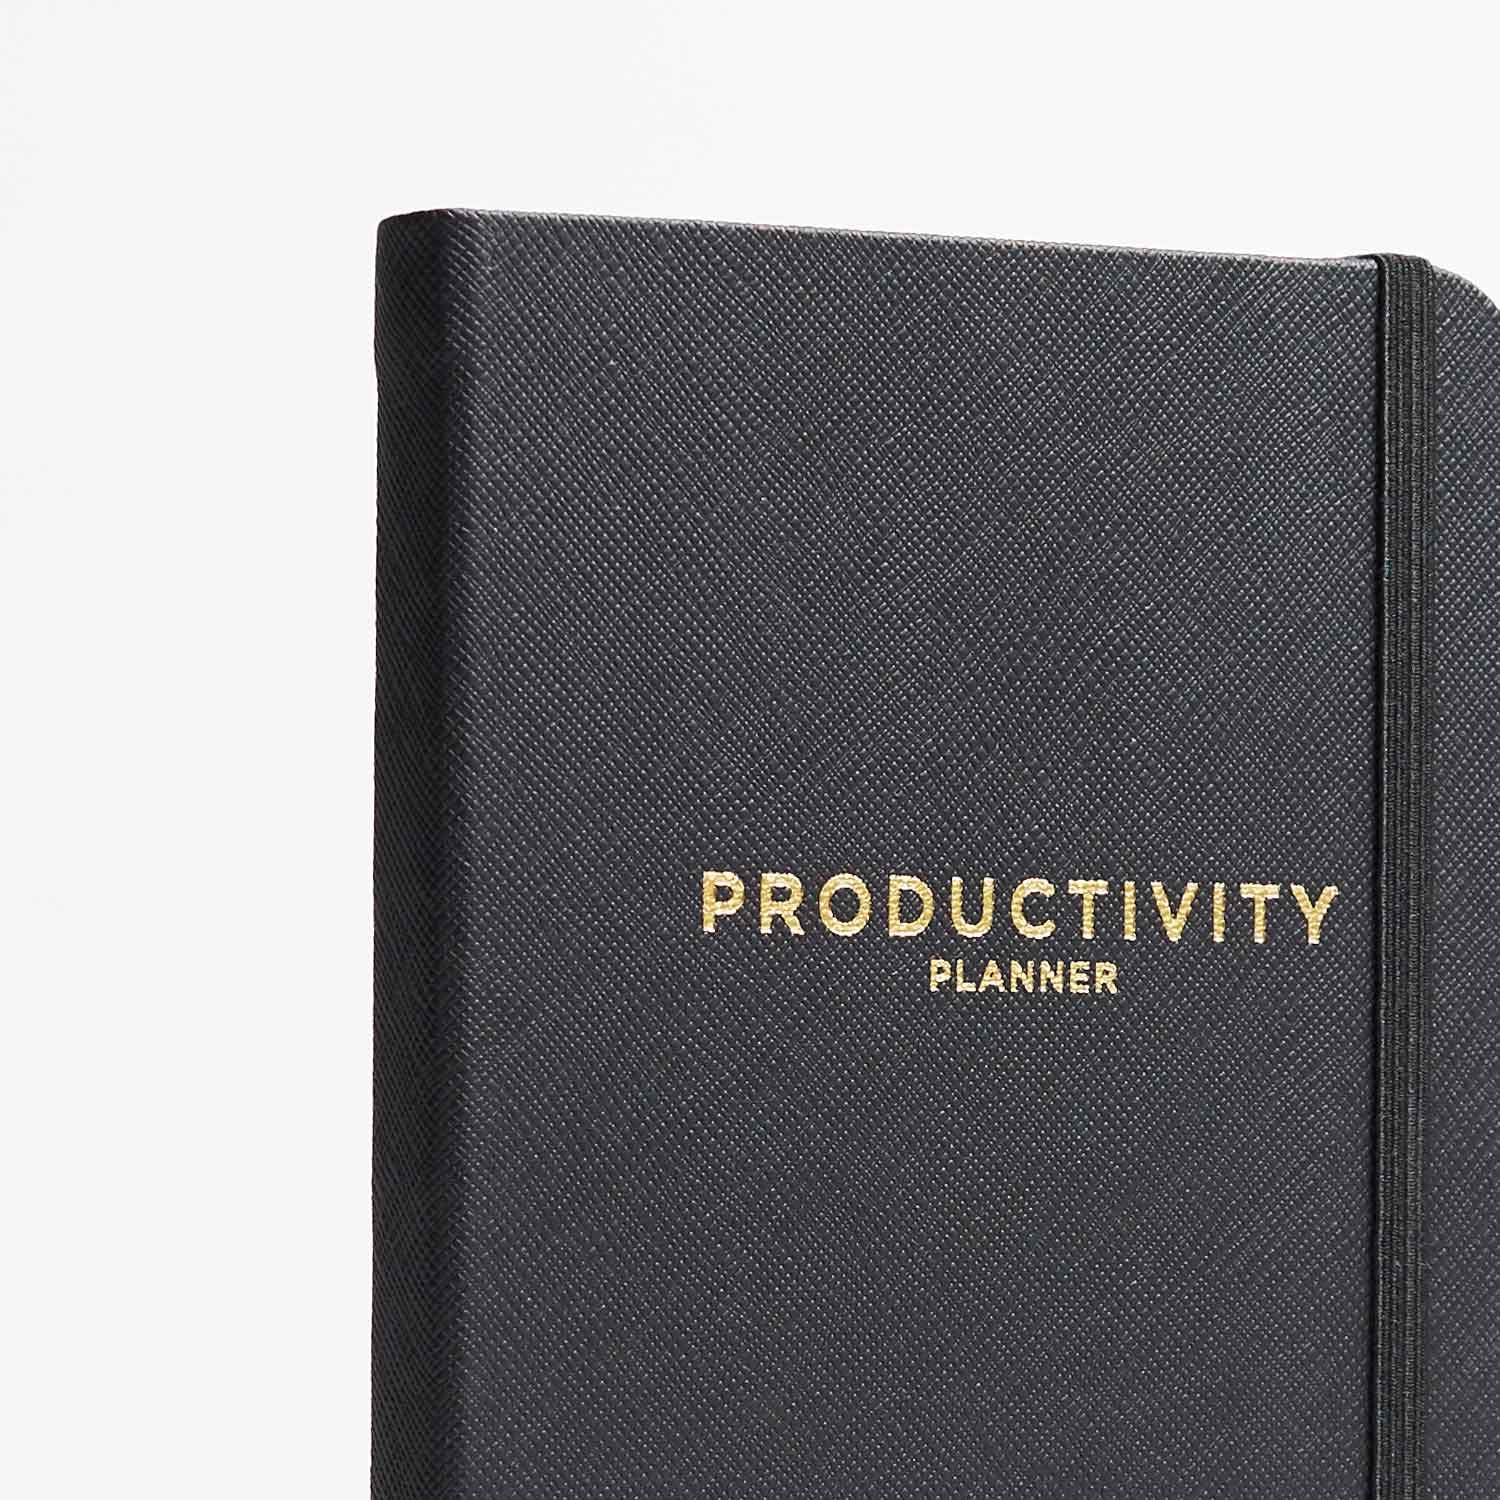 Non Dated 5 x 8 Daily Planner Productivity Planner